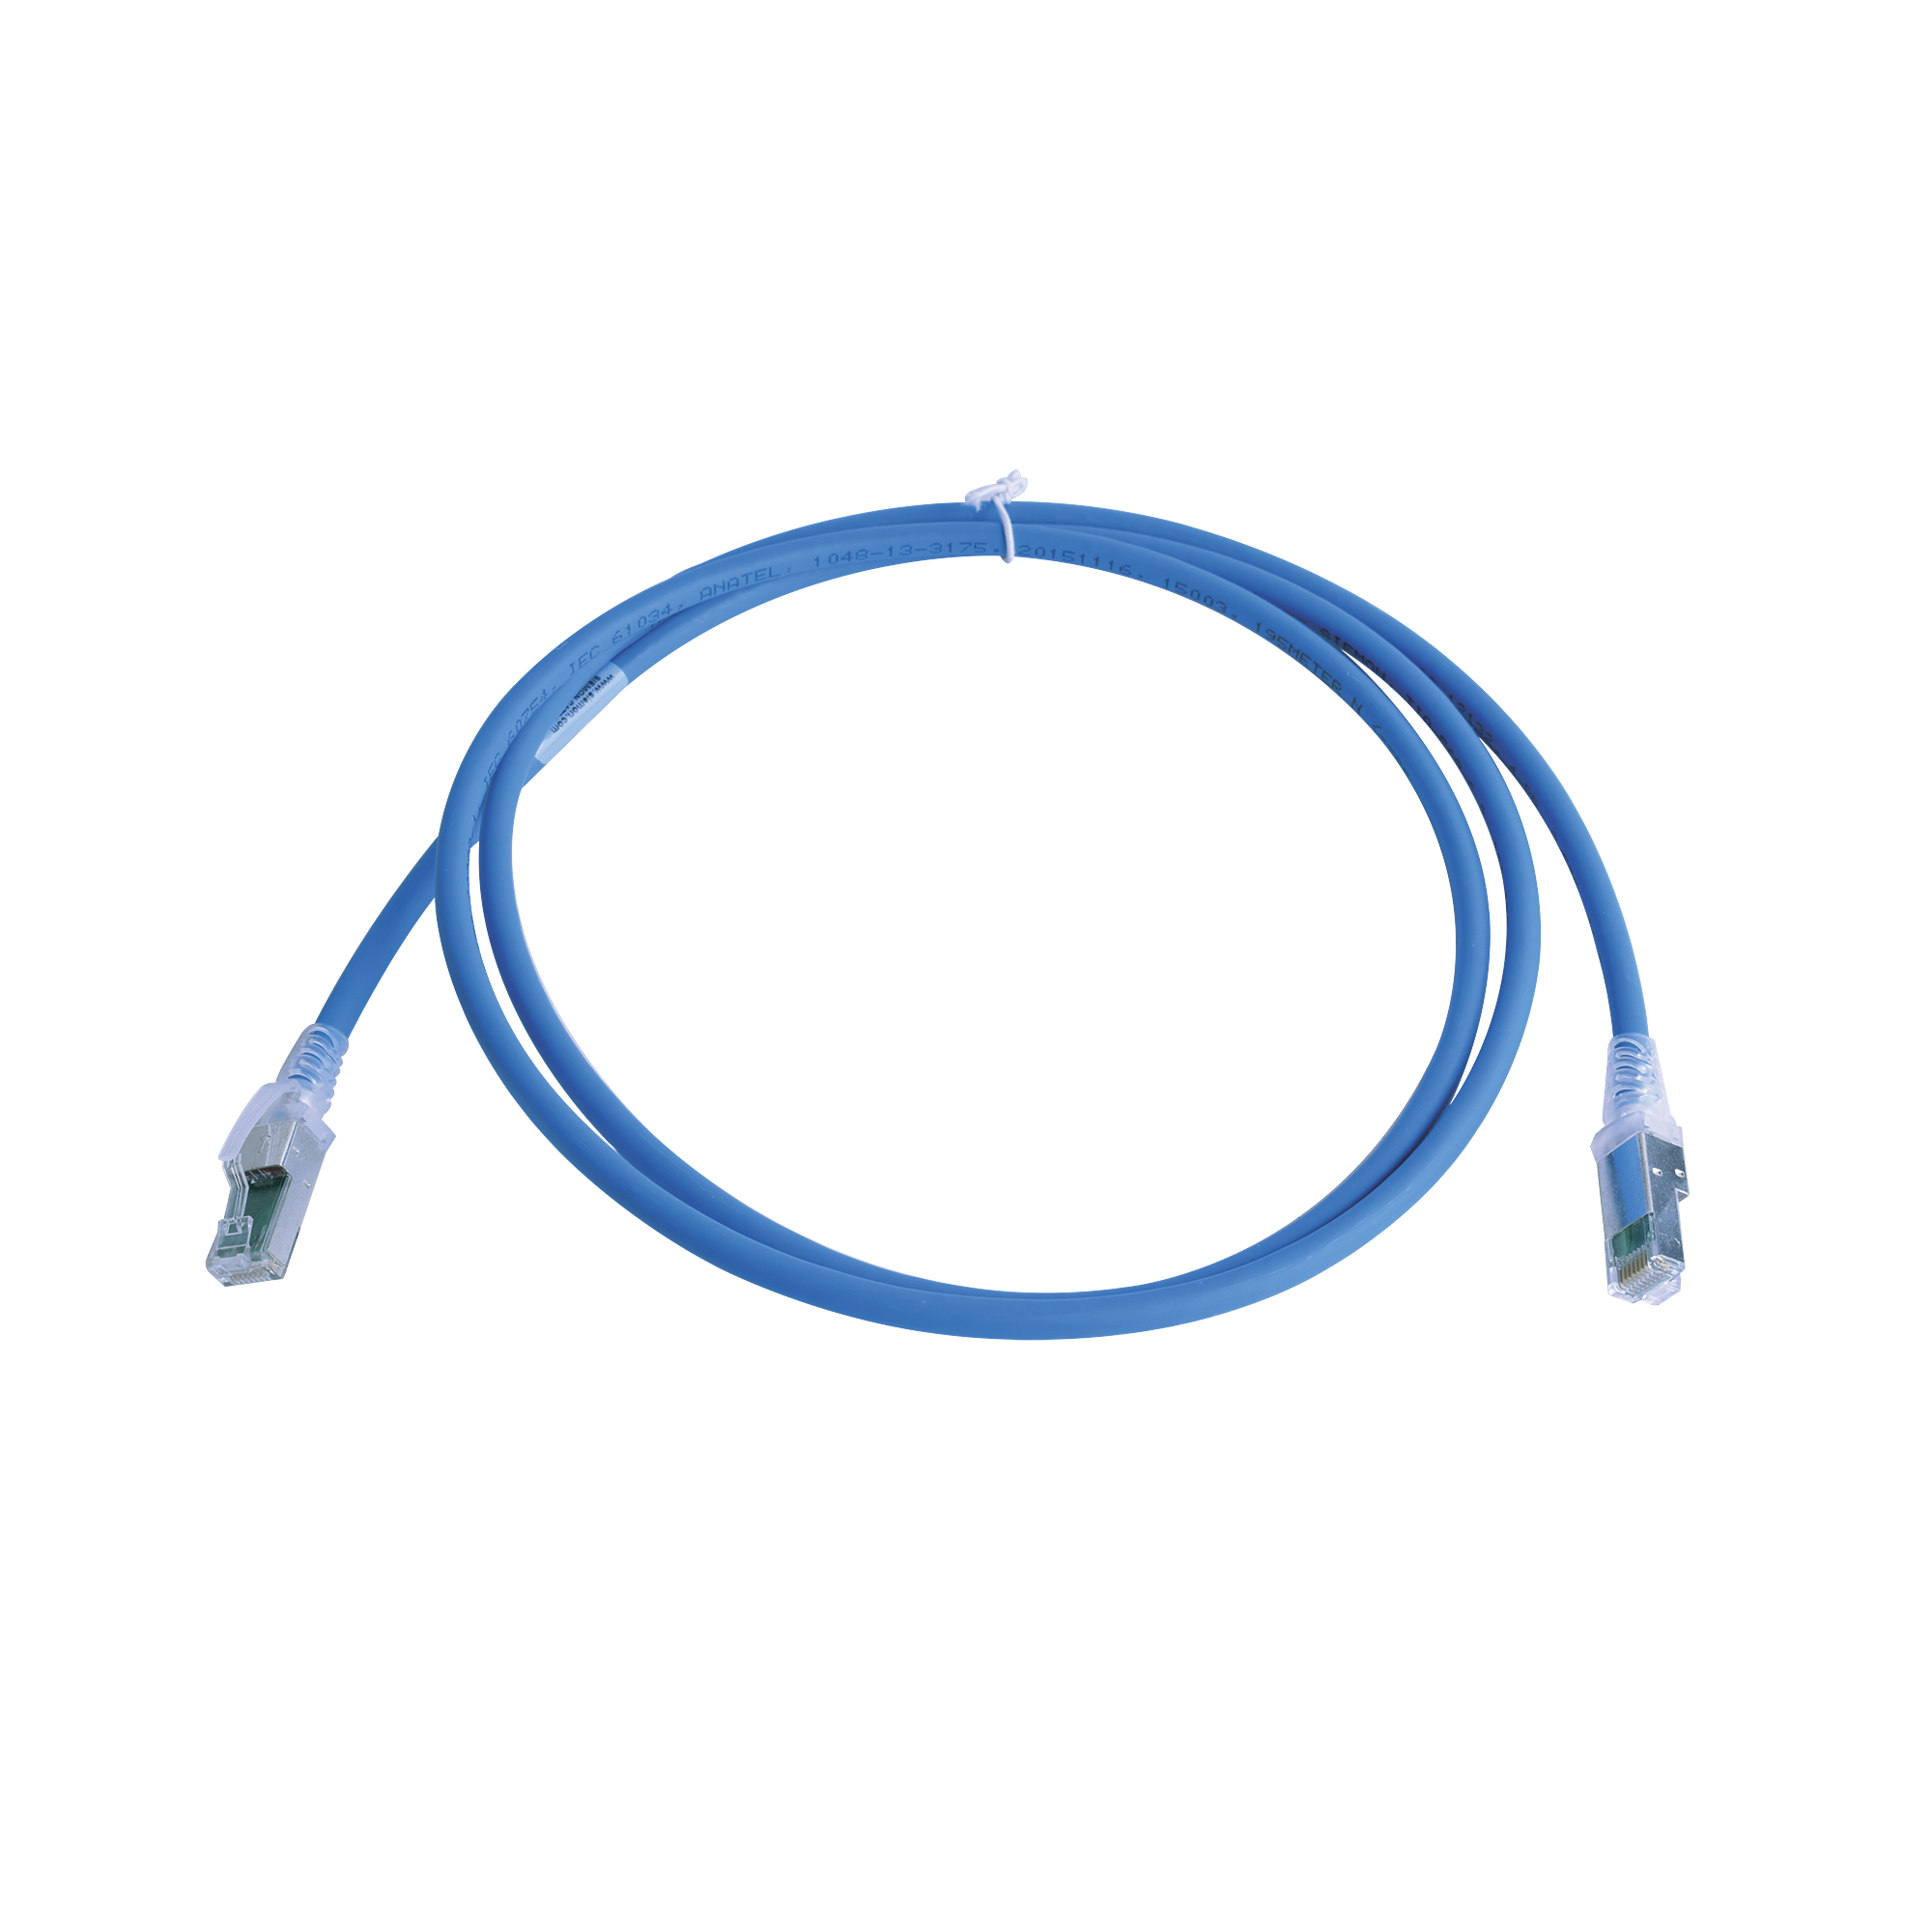 Patch Cord Z-MAX Cat6A S/FTP, CM/LS0H, 5ft, Color Azul, Versión Bulk (Sin Empaque Individual)